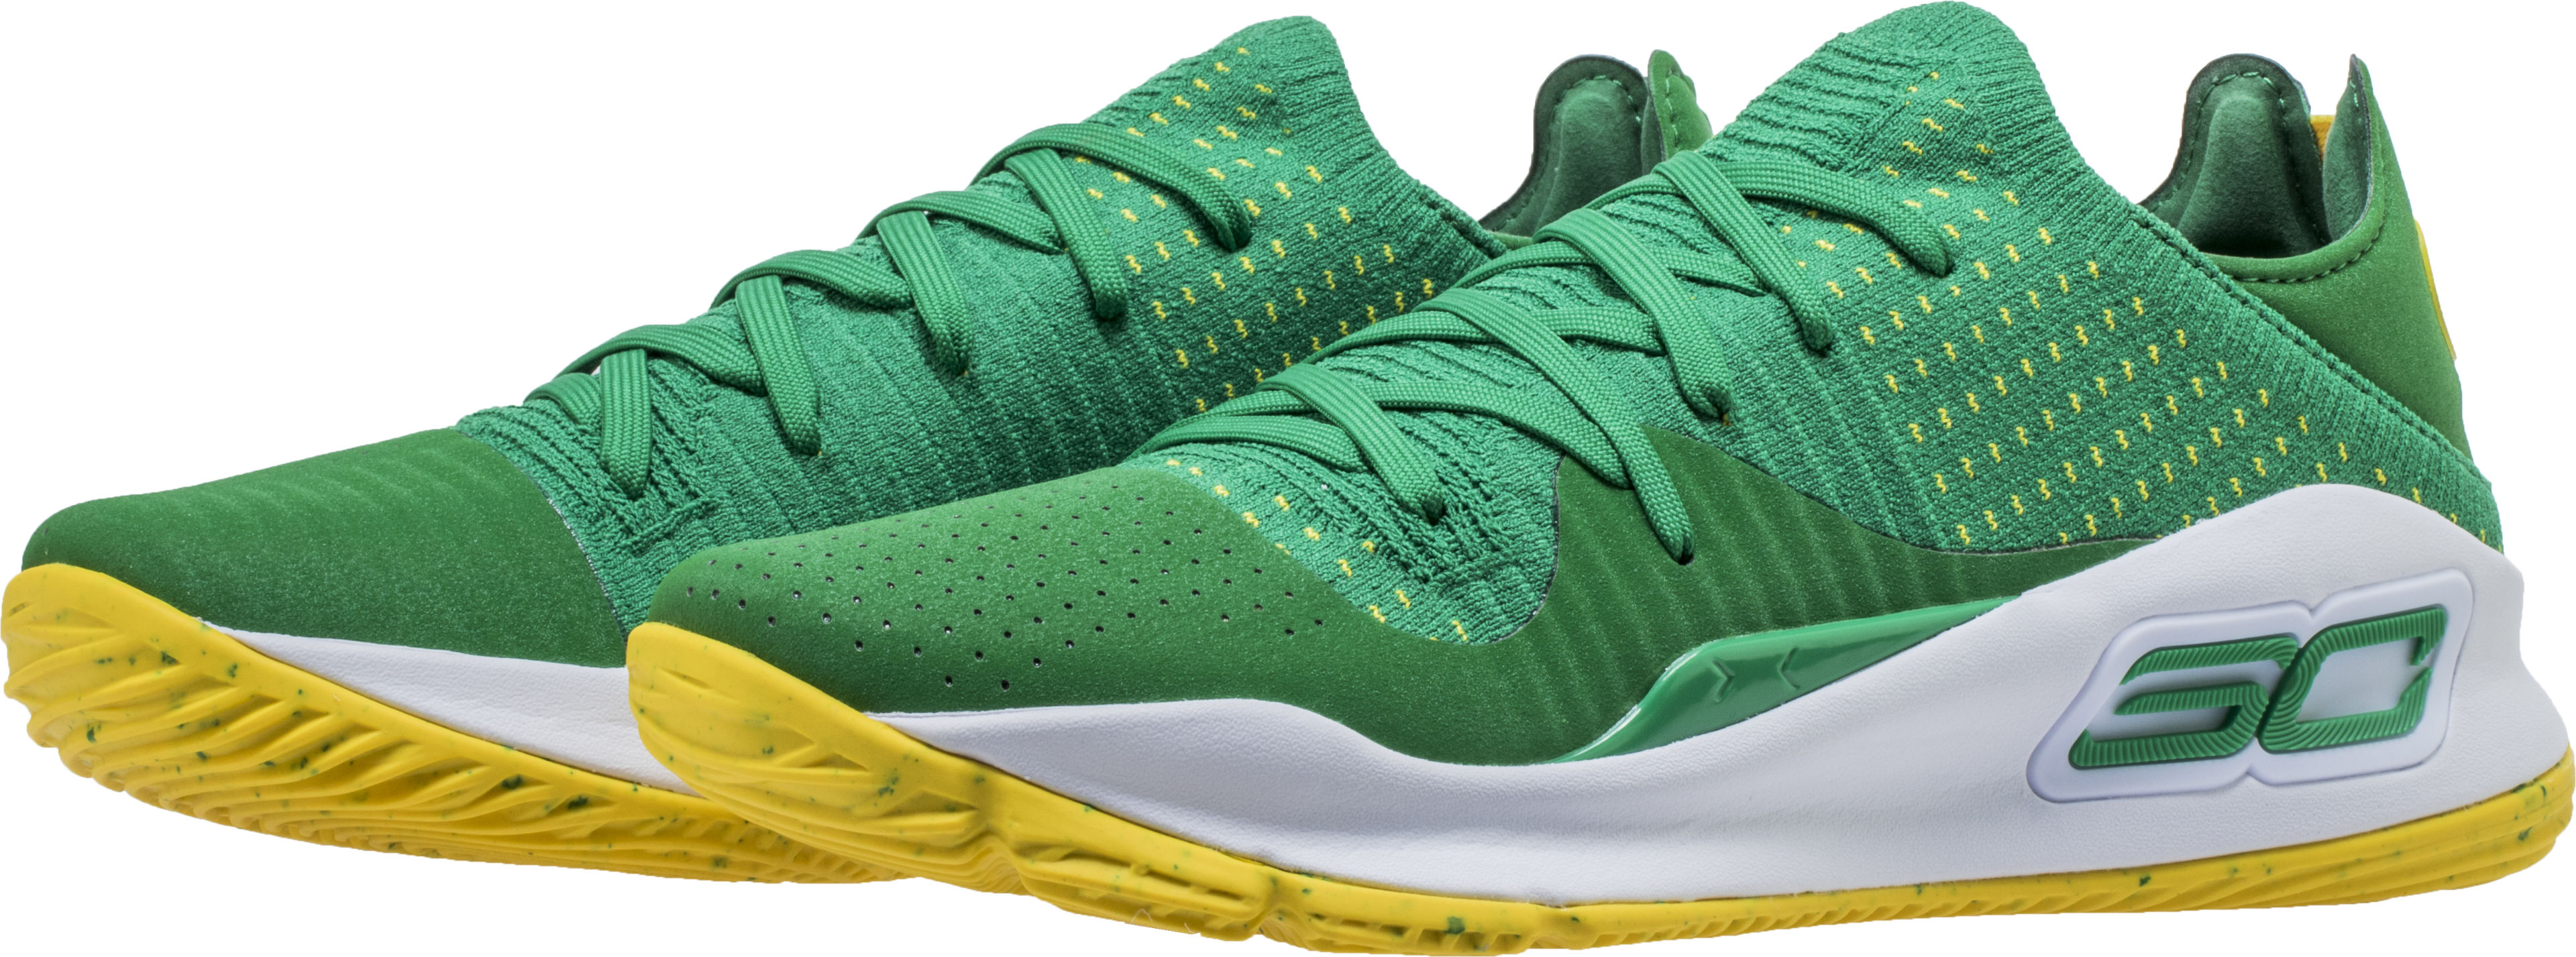 under armour curry 4 low oakland As 3